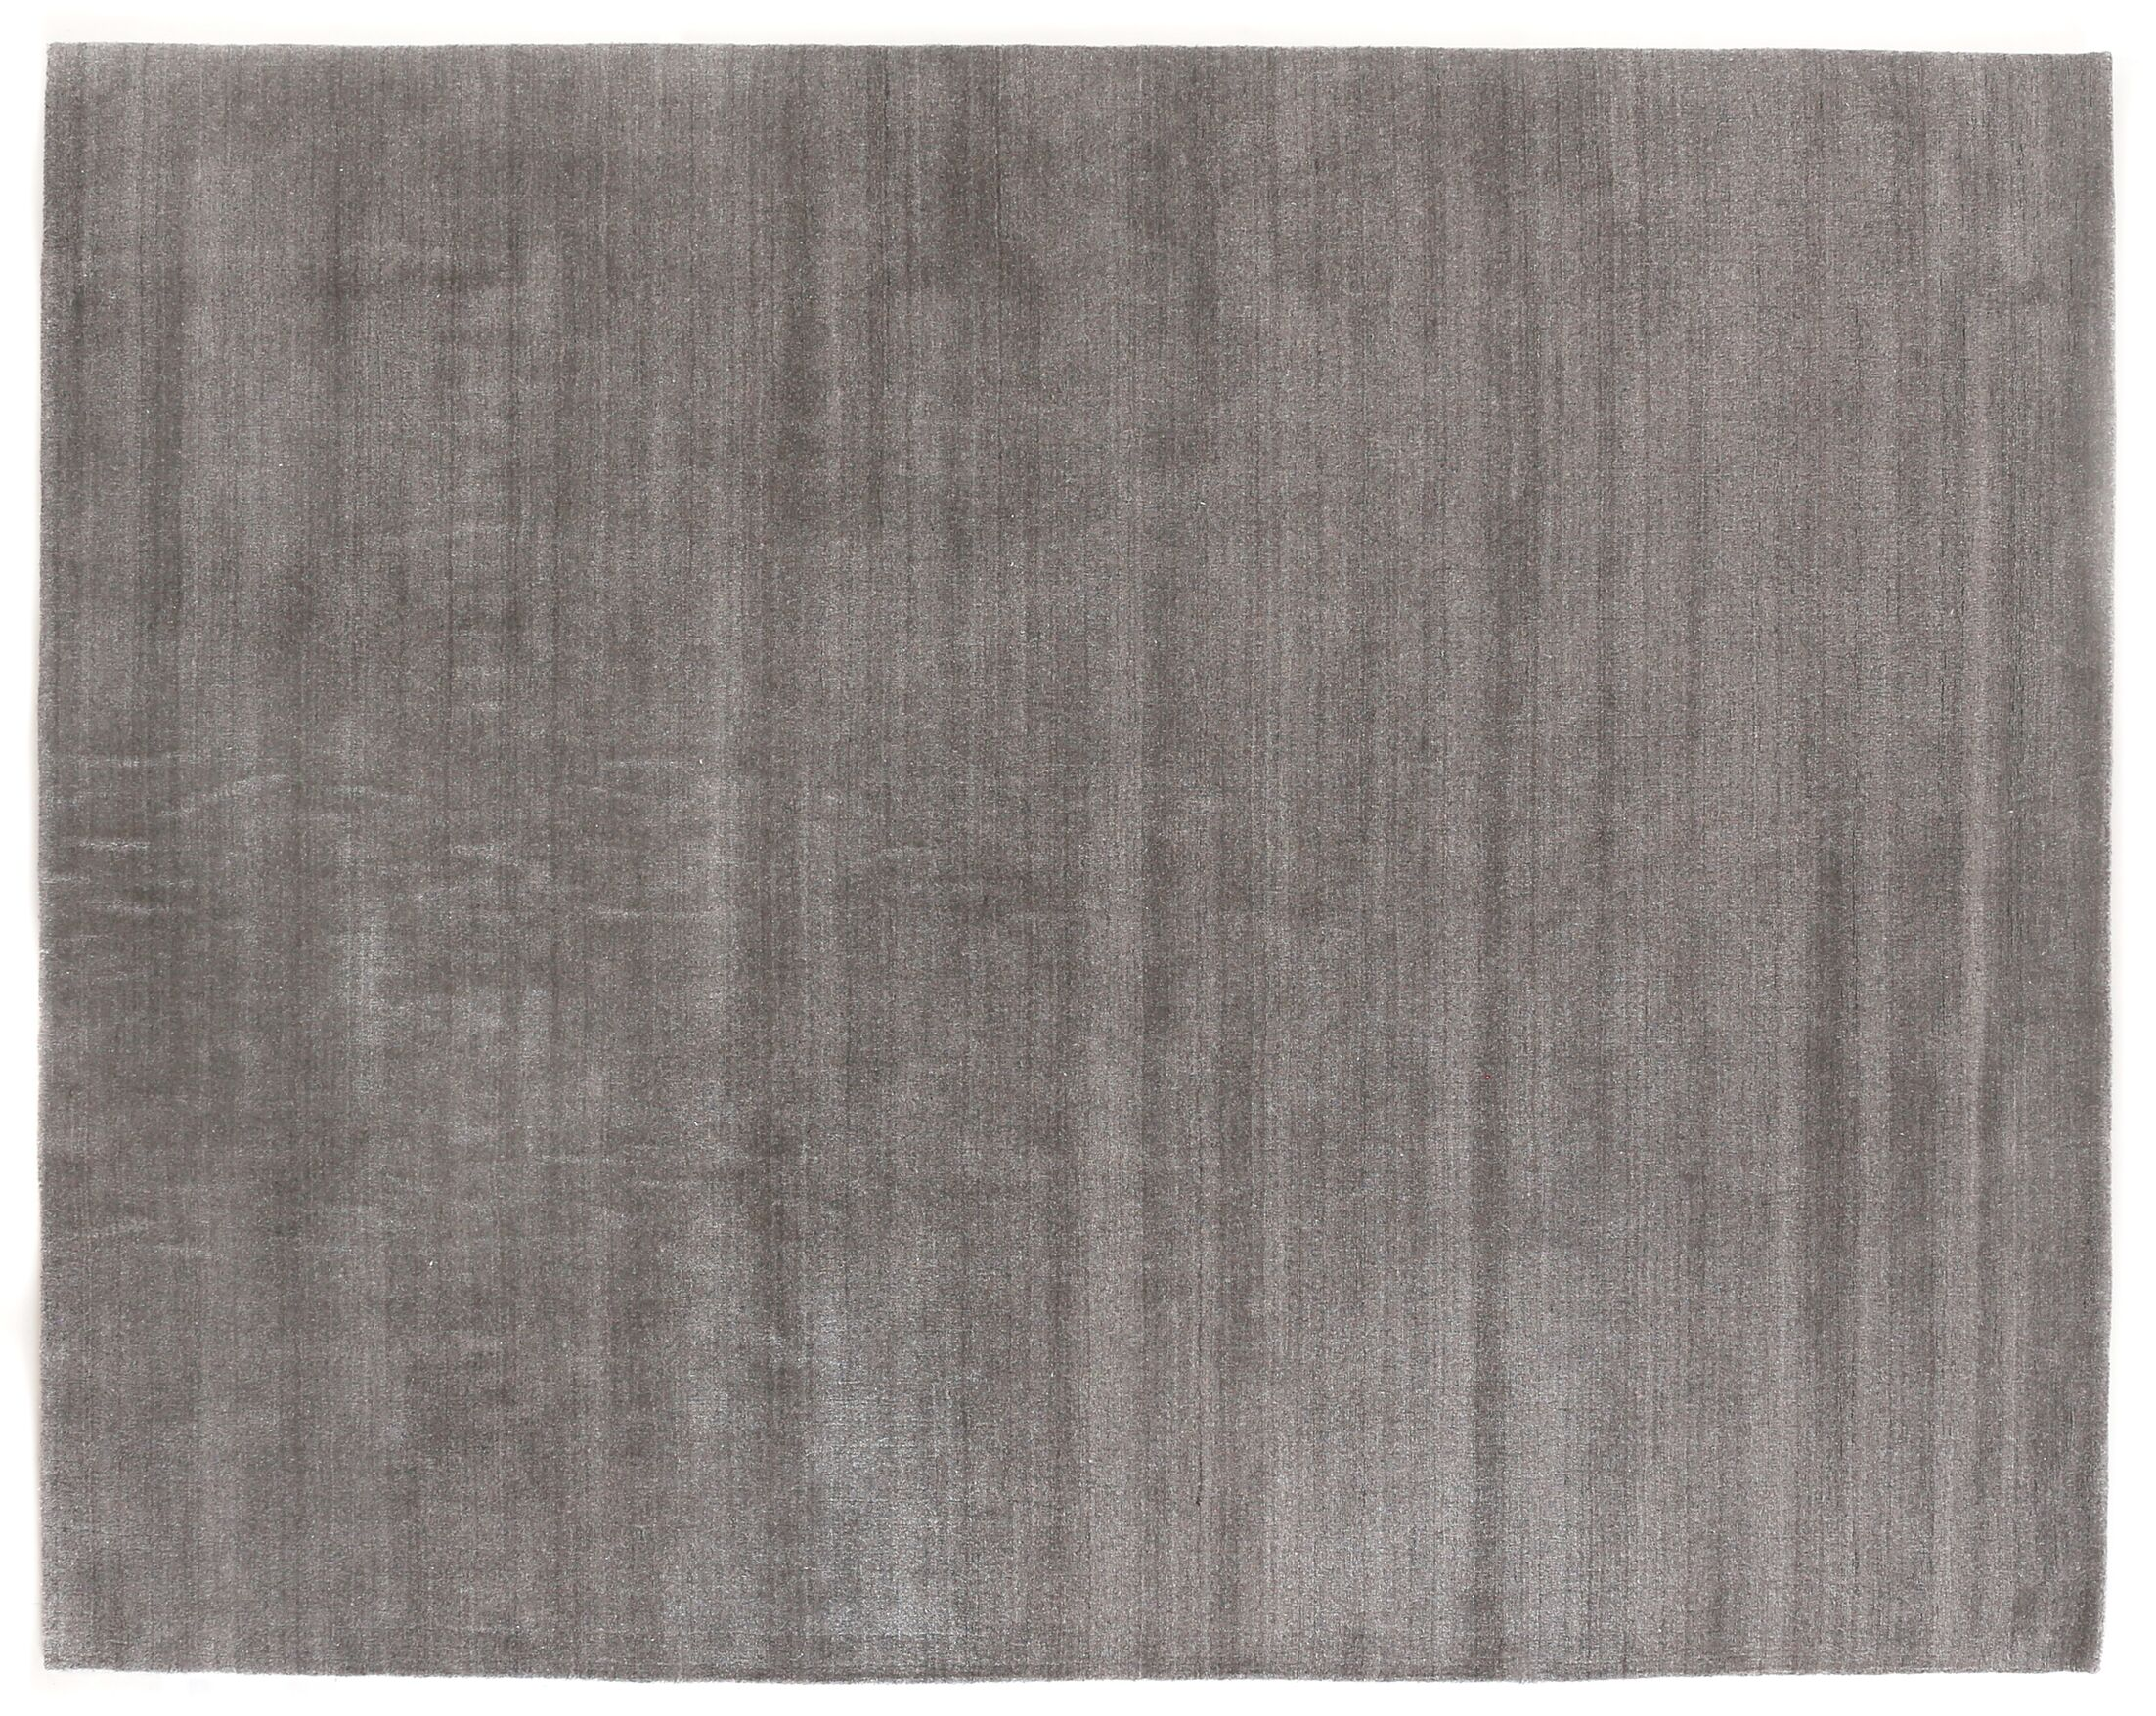 Sanctuary Hand-Woven Silk Brown Area Rug Rug Size: Rectangle 14' x 18'